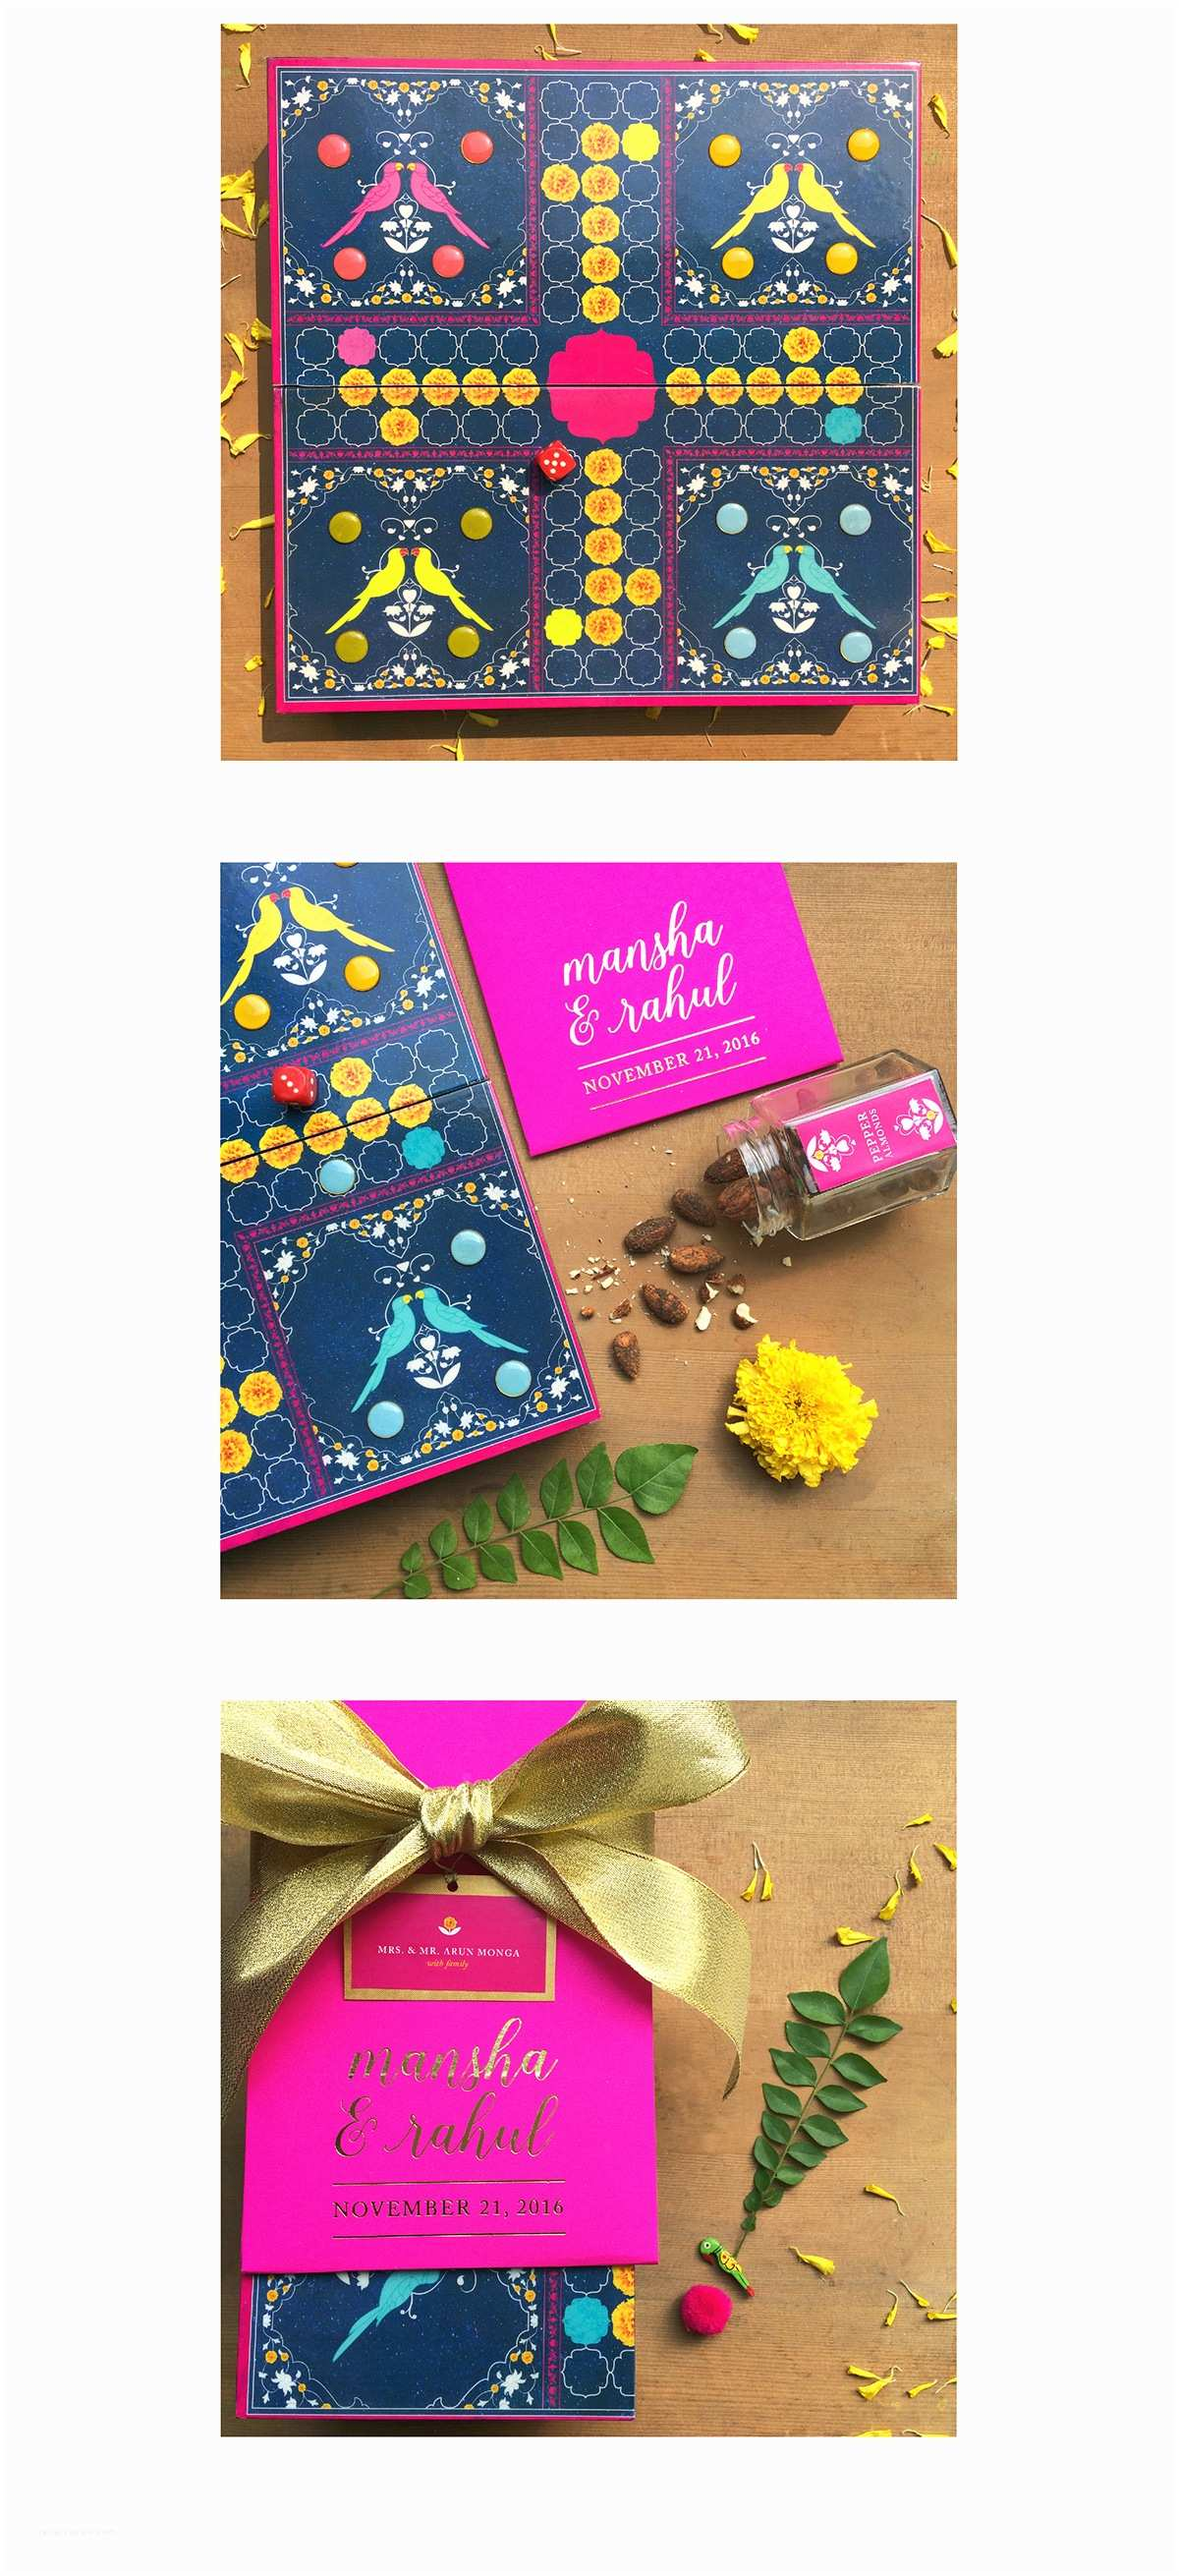 Interactive Wedding Invitations the Coolest Most Amazing Way to Invite Guests